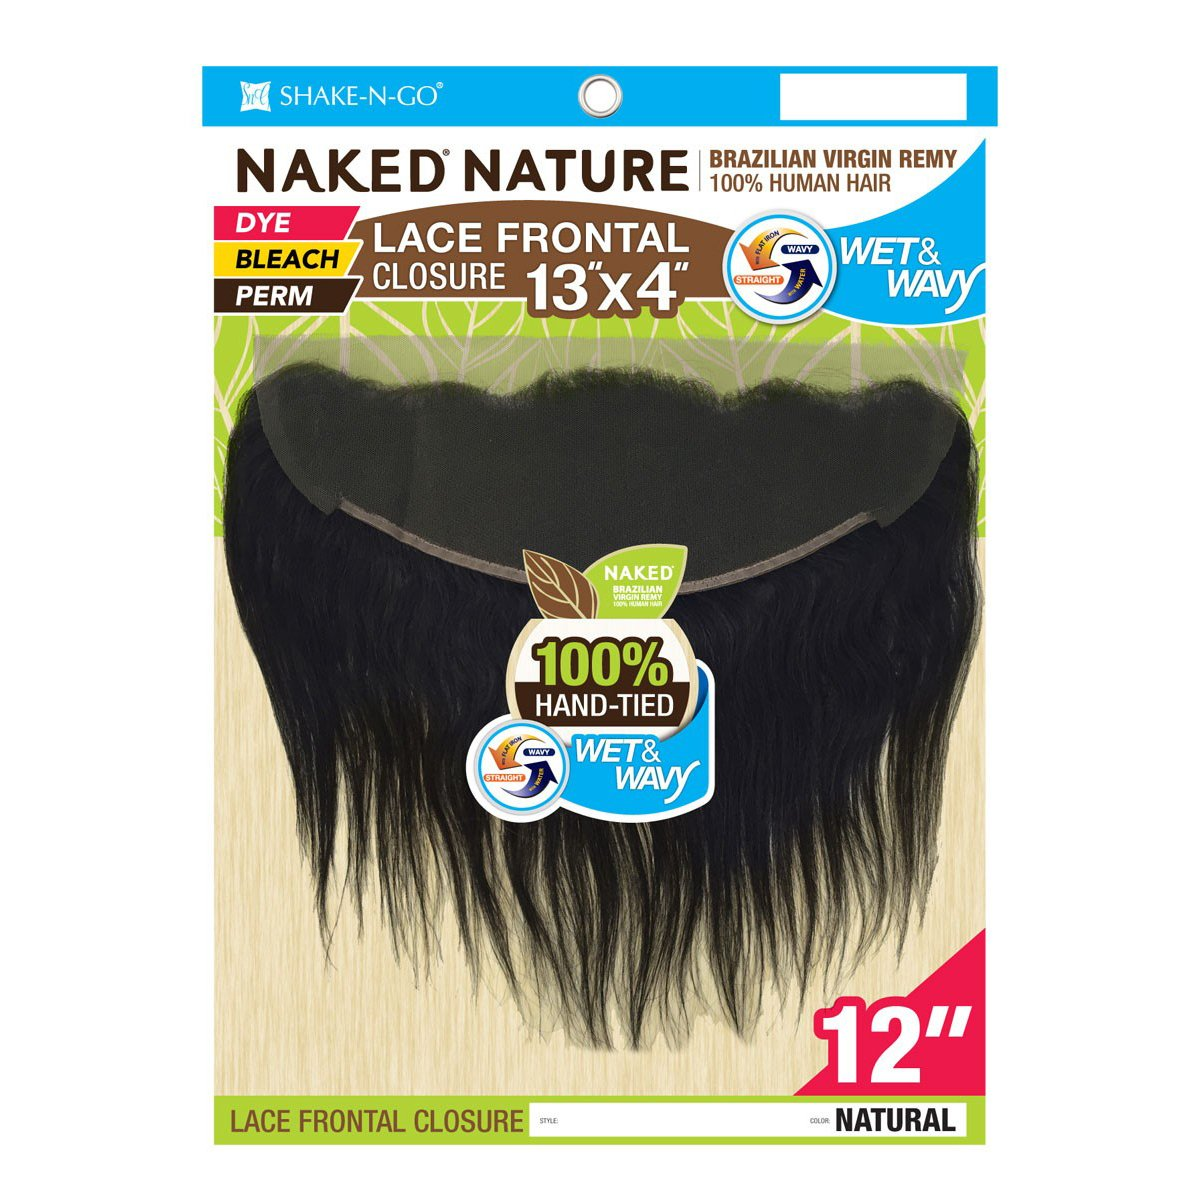 """NAKED Nature Brazilian Virgin Remy Hair Wet&Wavy 13""""x4"""" Lace Frontal Closure - Deep Wave 12"""" #Natural"""